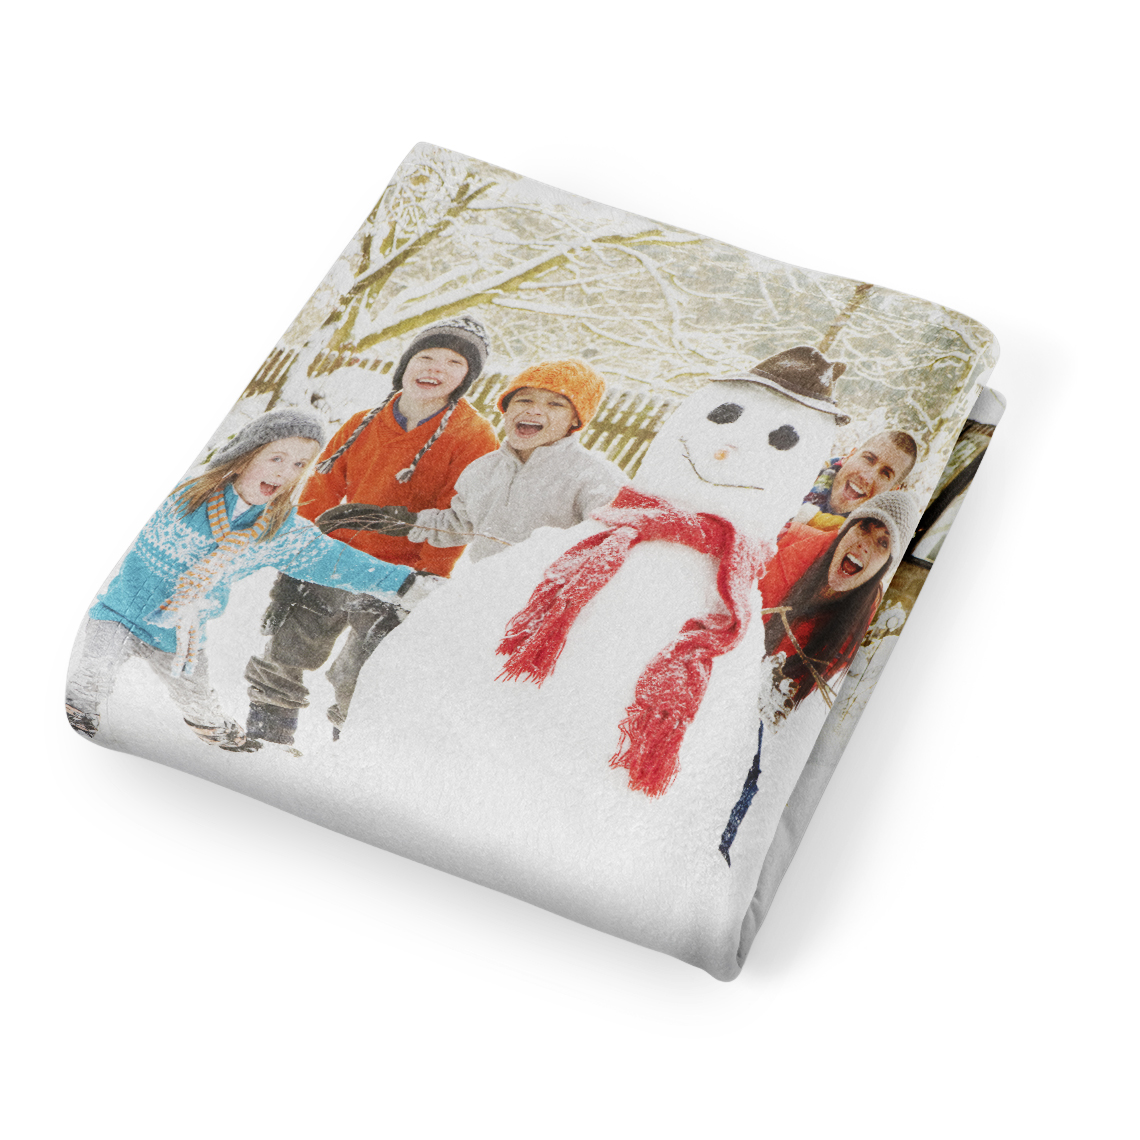 arctic fleece photo blanket  50x60